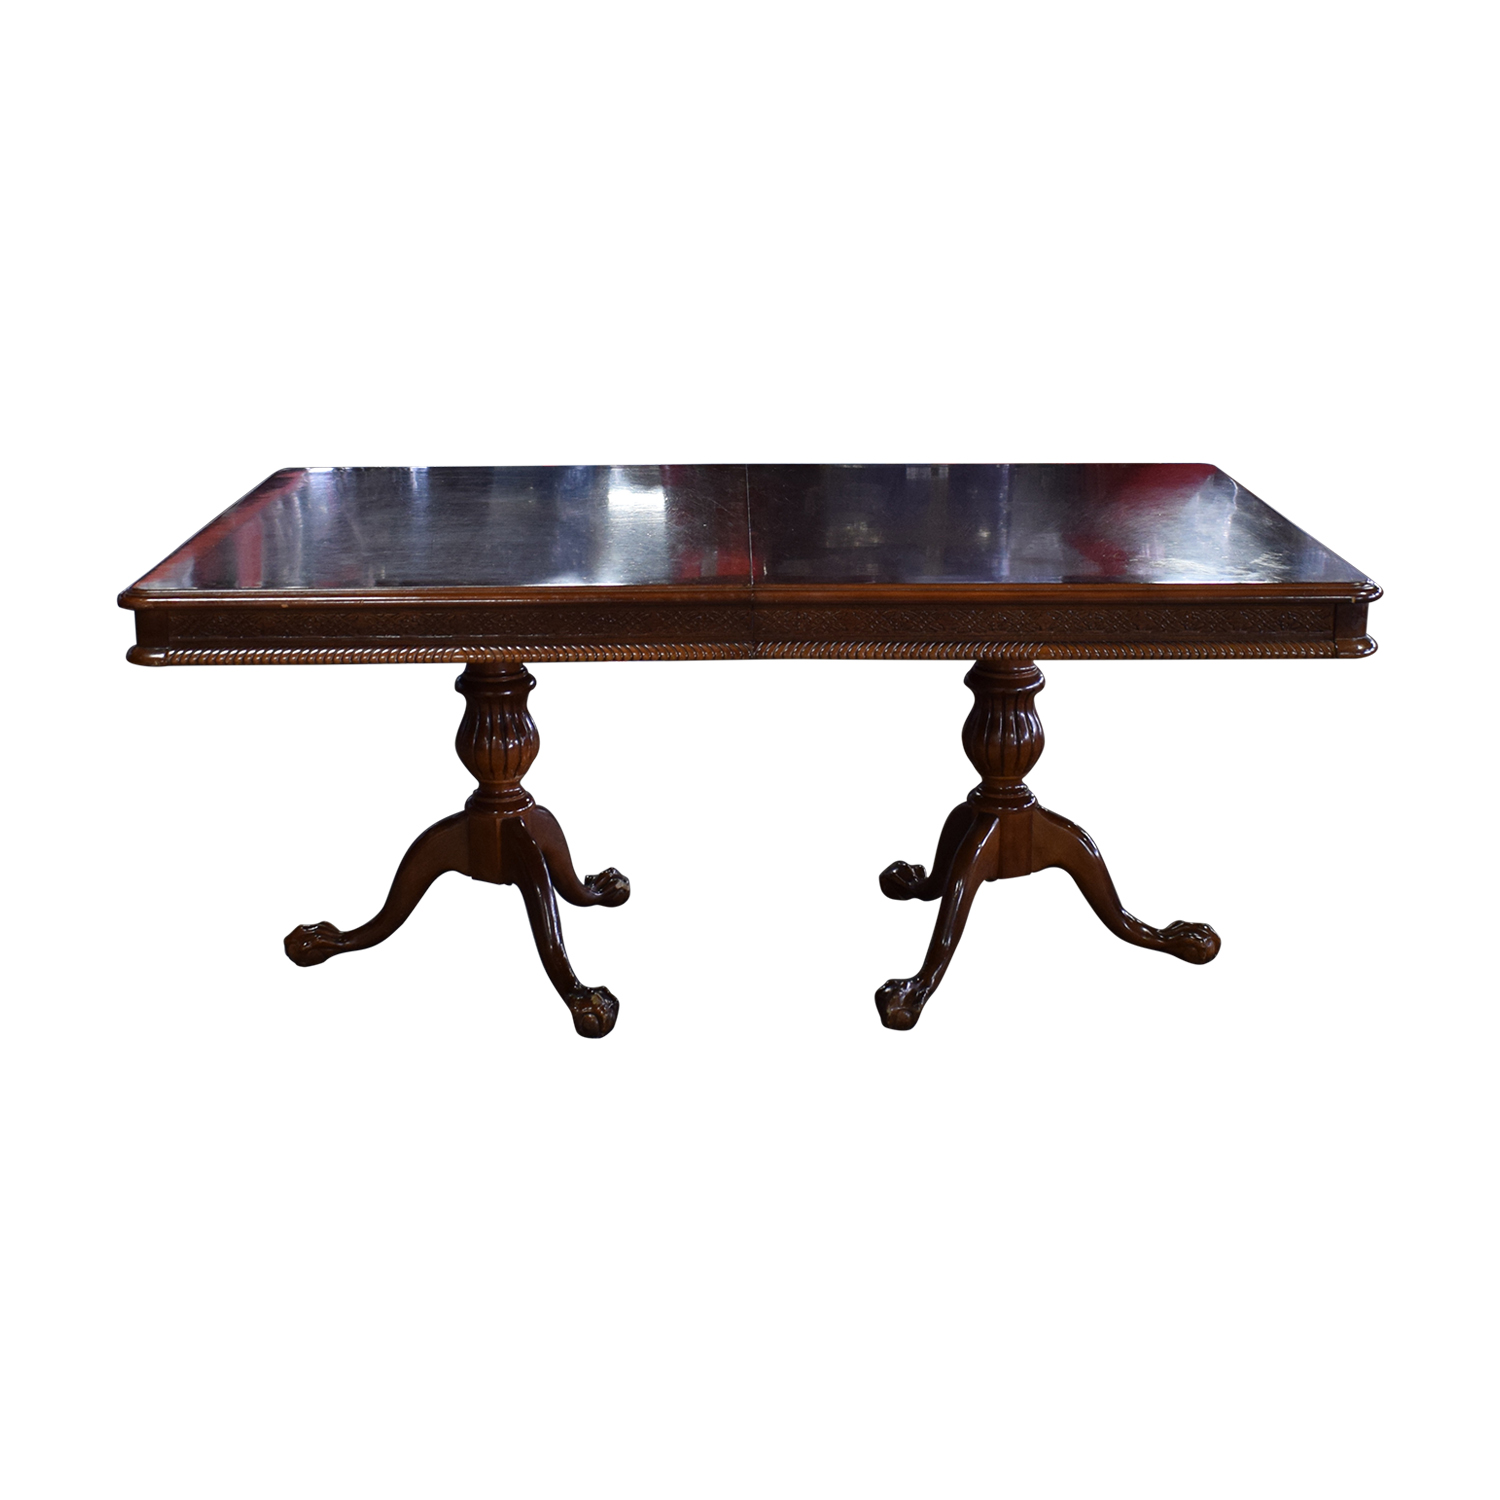 Carved Wood Dining Table with Two Extensions price